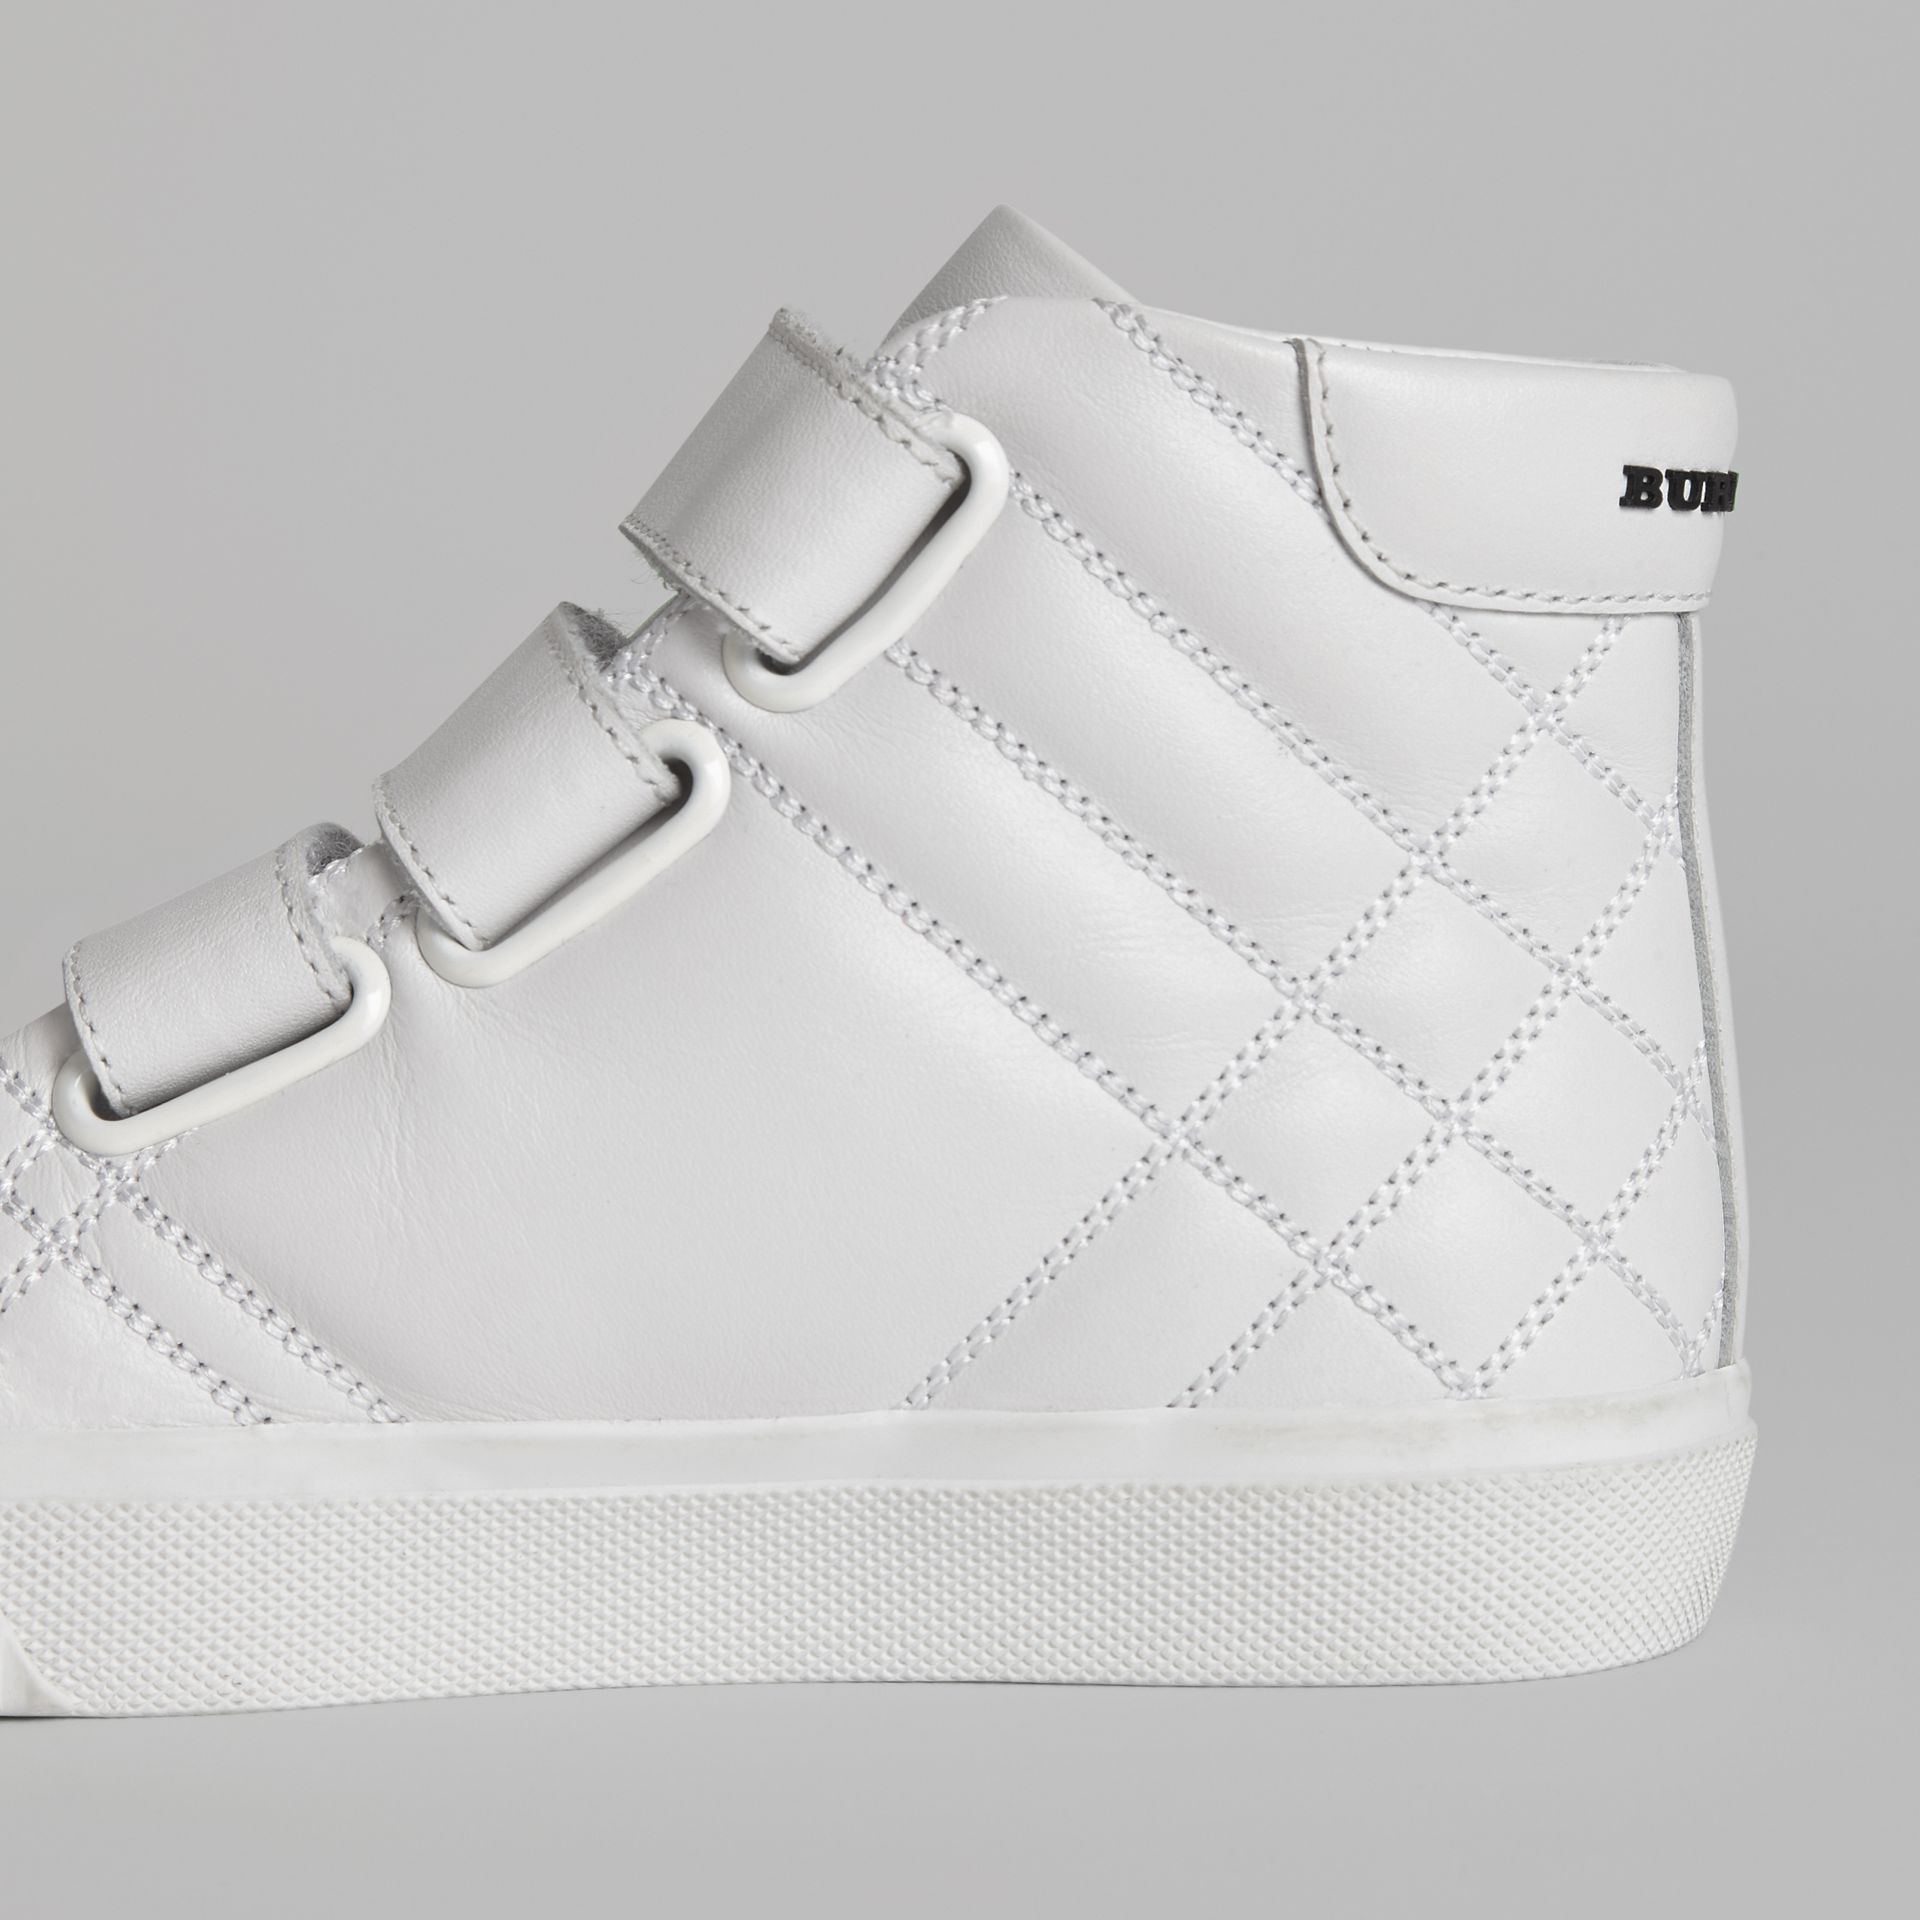 Sneakers montantes en cuir matelassé (Blanc Optique) | Burberry Canada - photo de la galerie 1